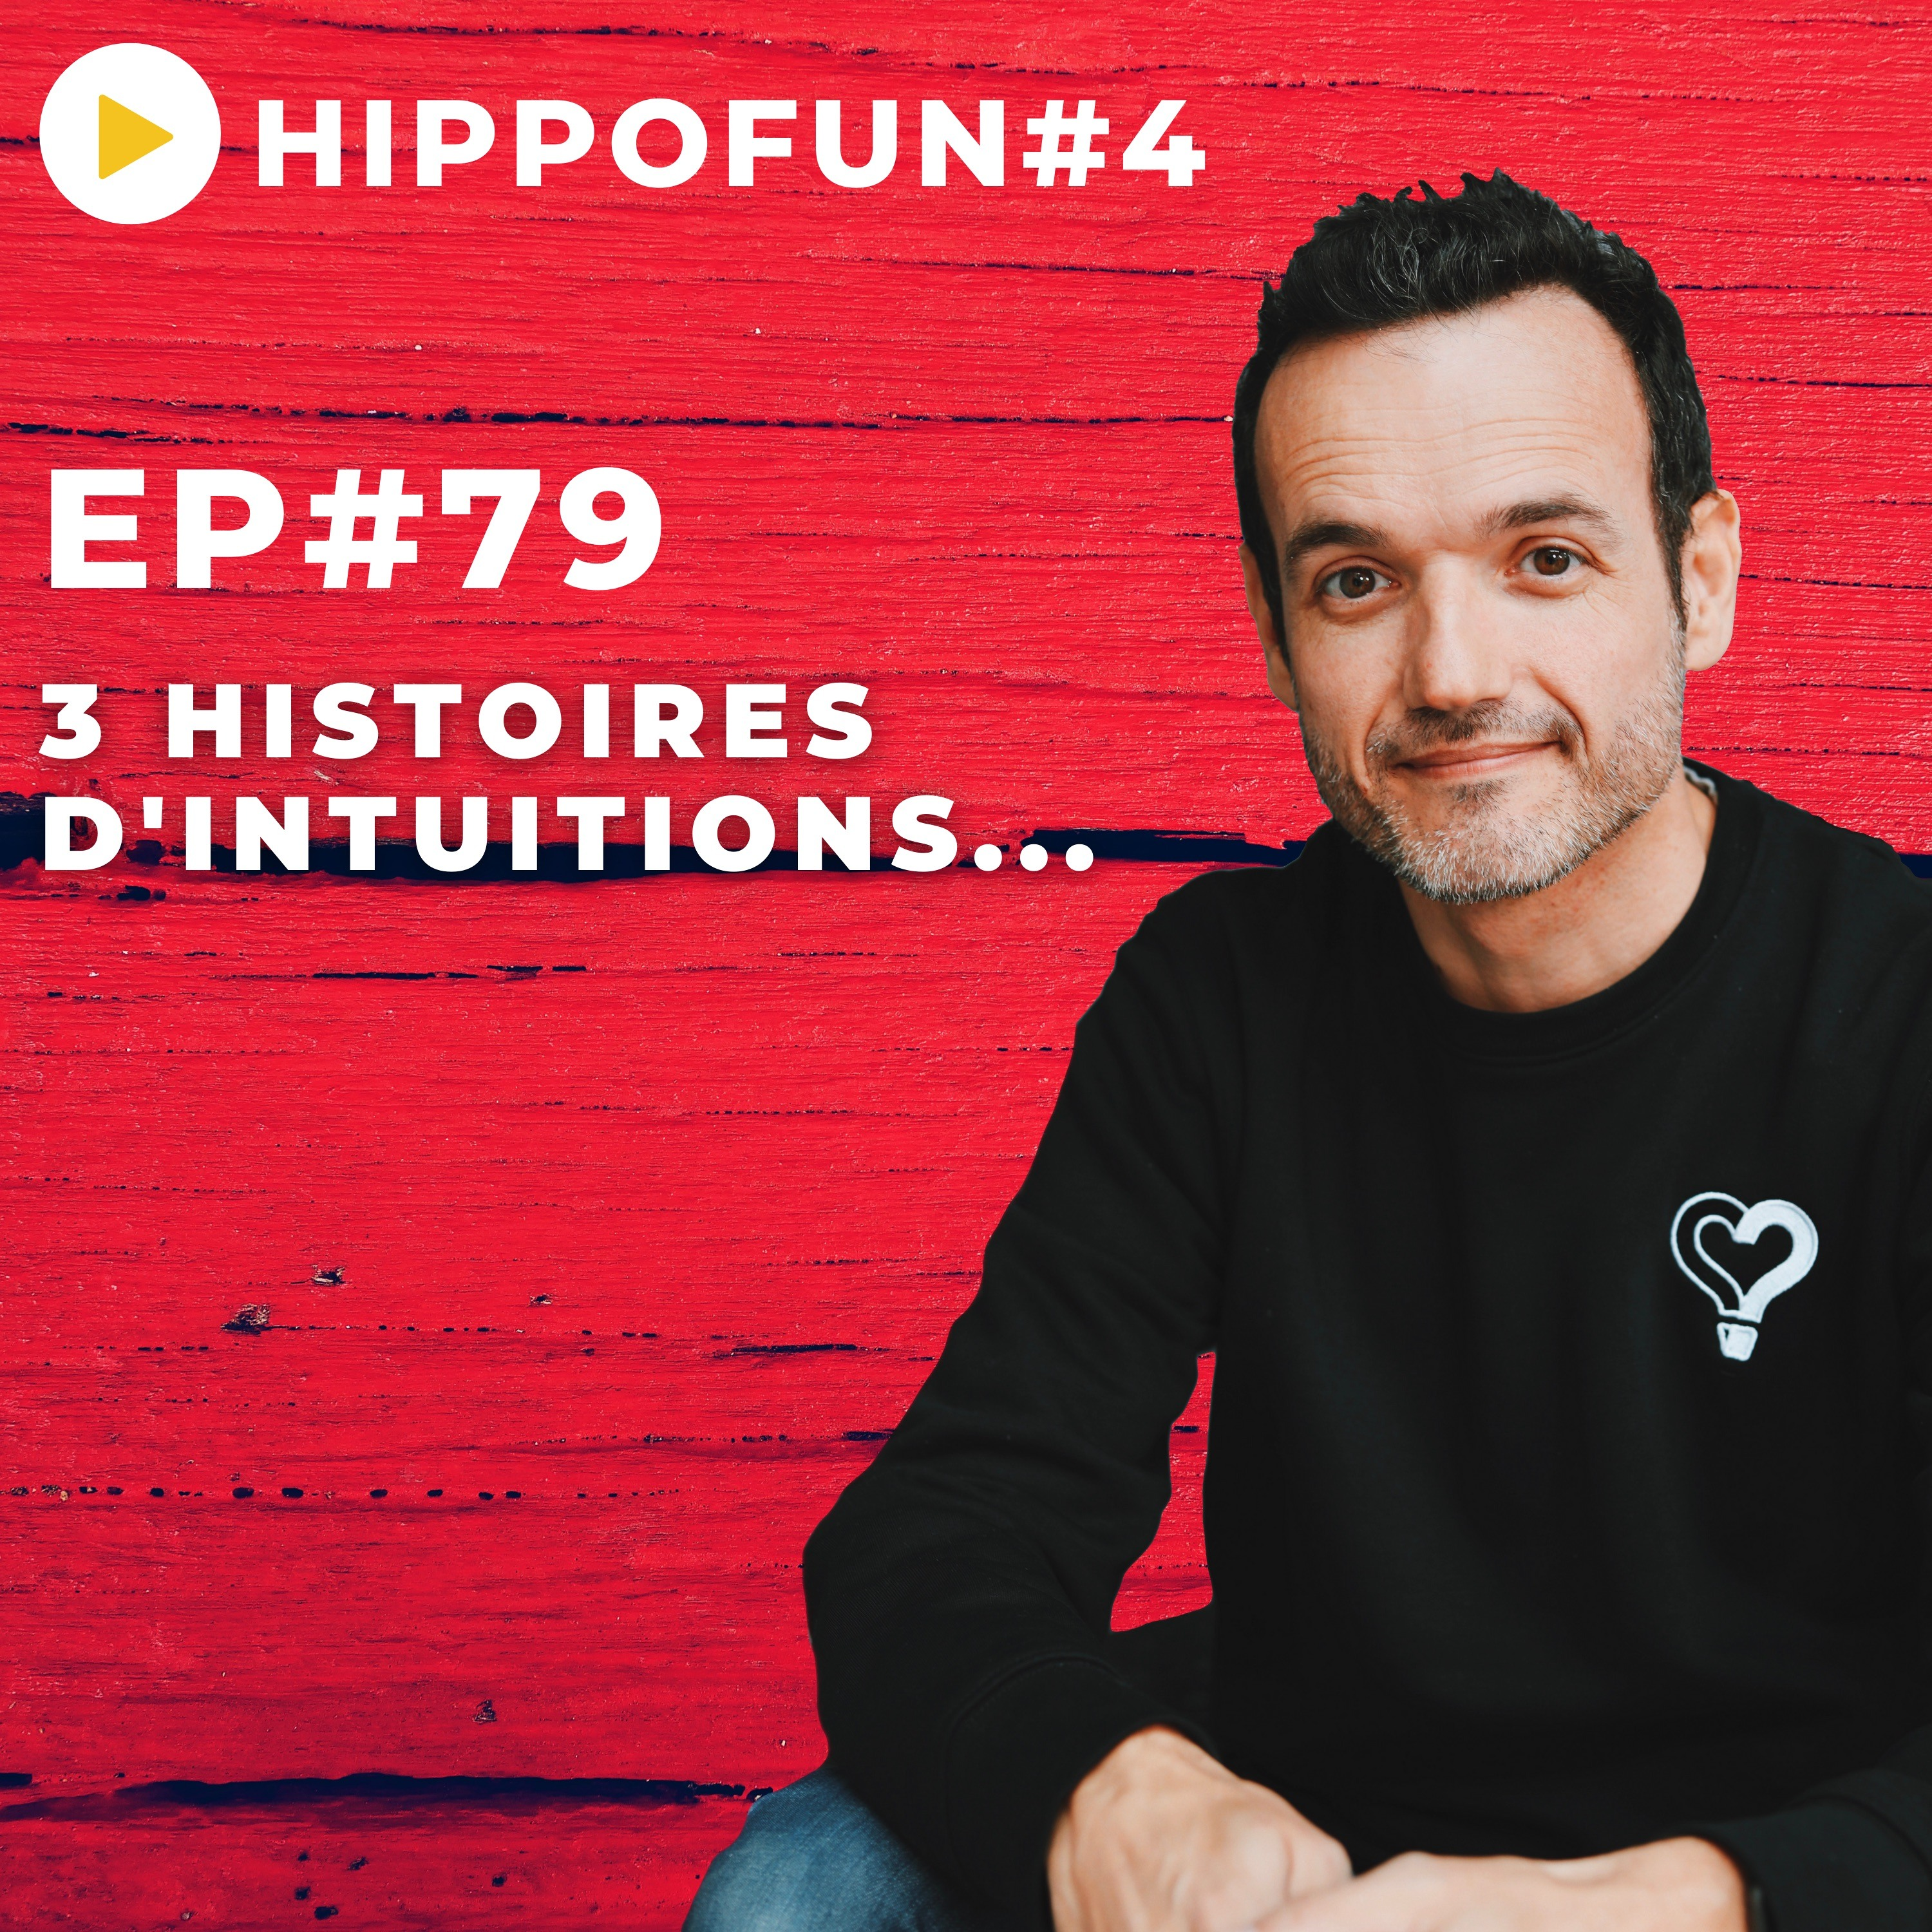 EP#79 - 3 histoires d'intuitions incroyables ! - HIPPOFUN #4